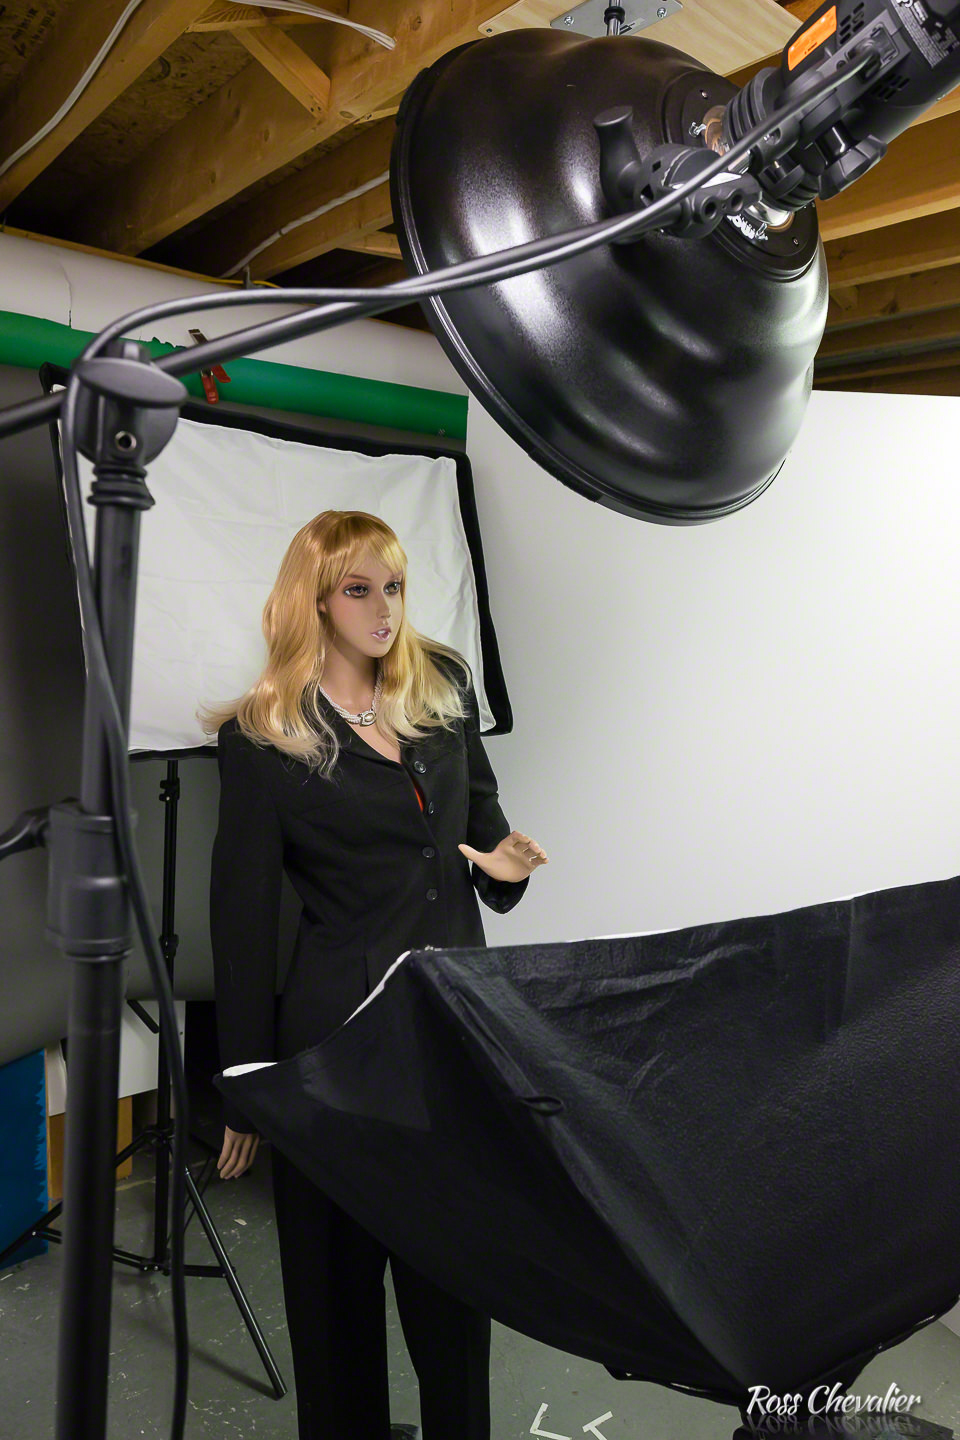 A Behind the Scenes image for an upcoming lighting tutorial. Shot on the Sony A7 II, with a Sigma ART 24/1.4 Canon EF mount lens using the MC-11 mount converter. All automation was preserved, thus the MC-11 makes the one lens available on two different mounts.